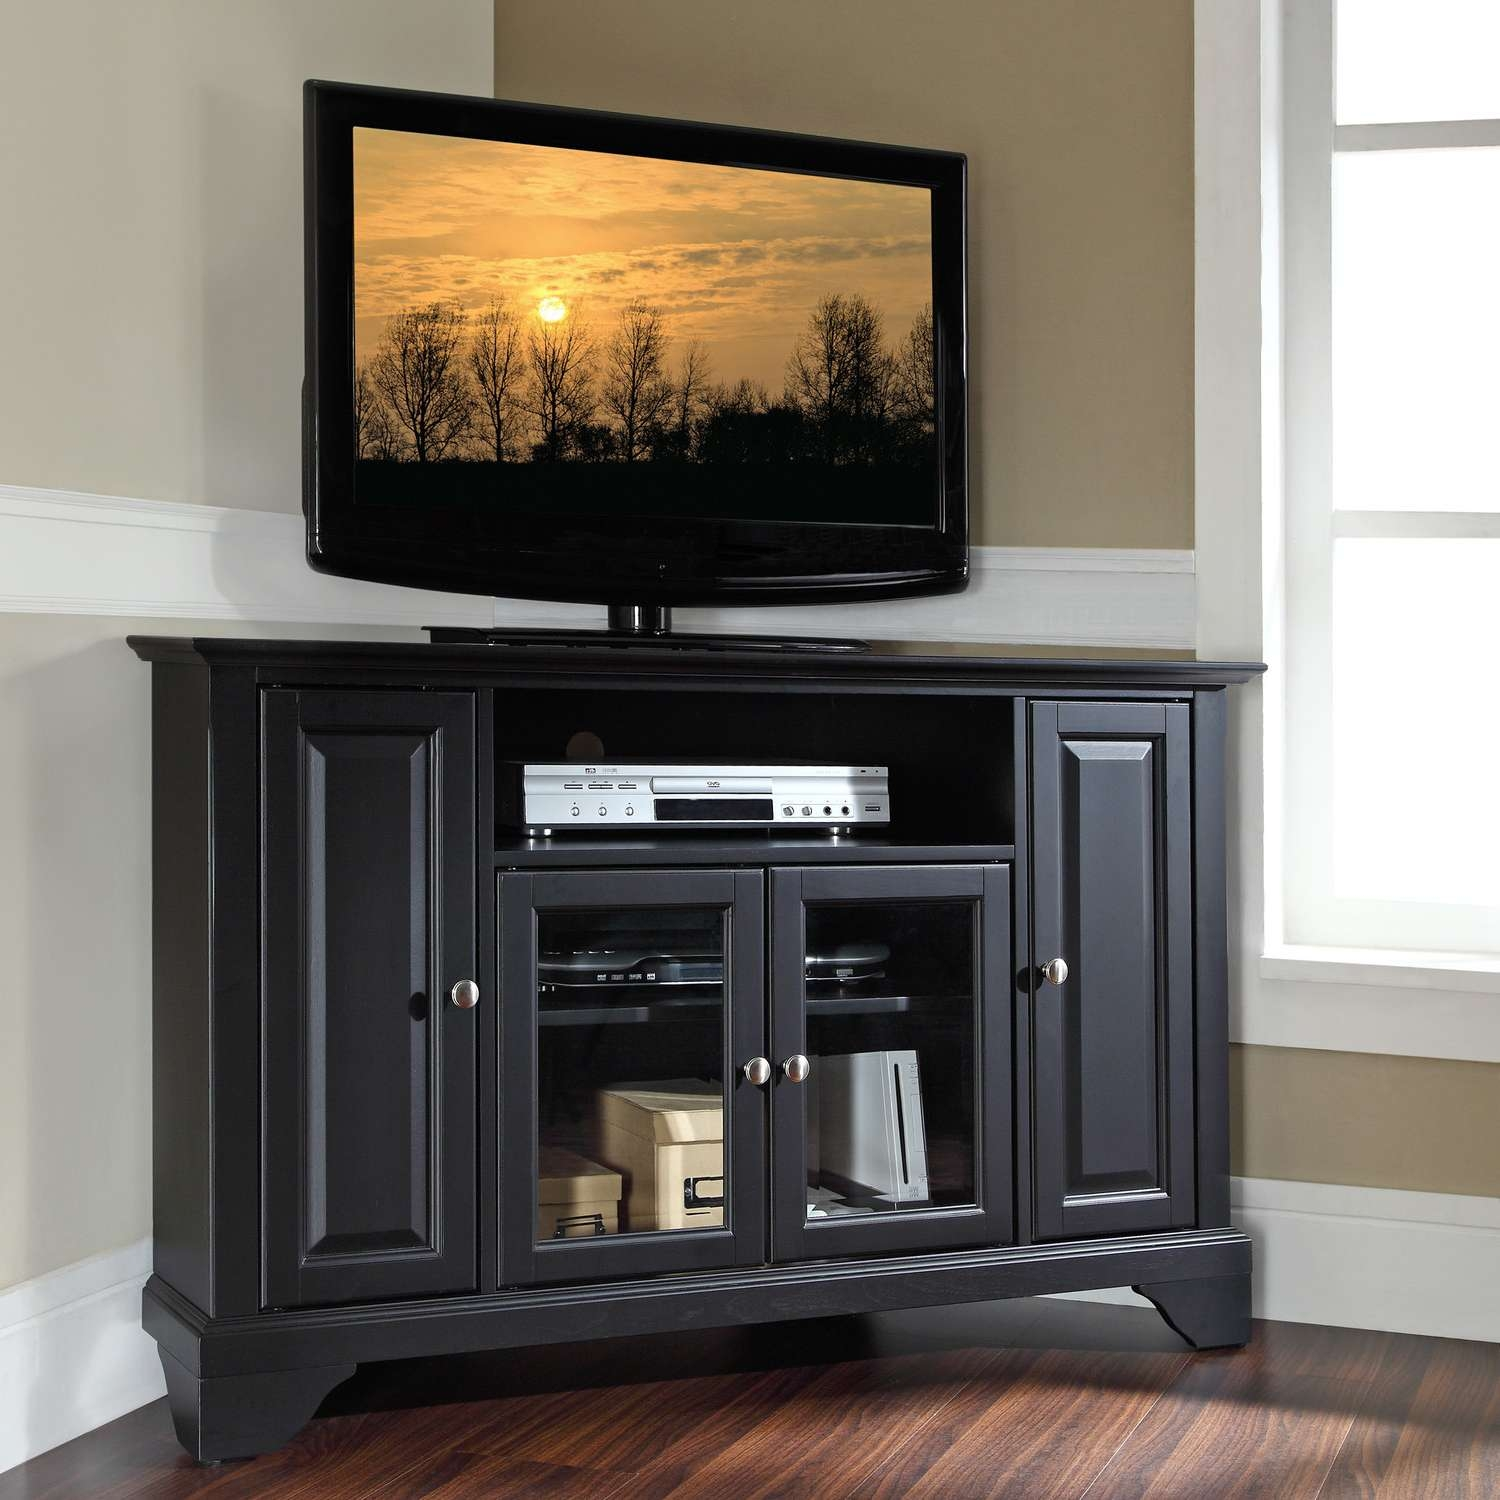 Furnitures Triangle Tv Stand Corner With Mount Black Lacquer Glass Pertaining To Solid Wood Black Tv Stands (View 10 of 15)